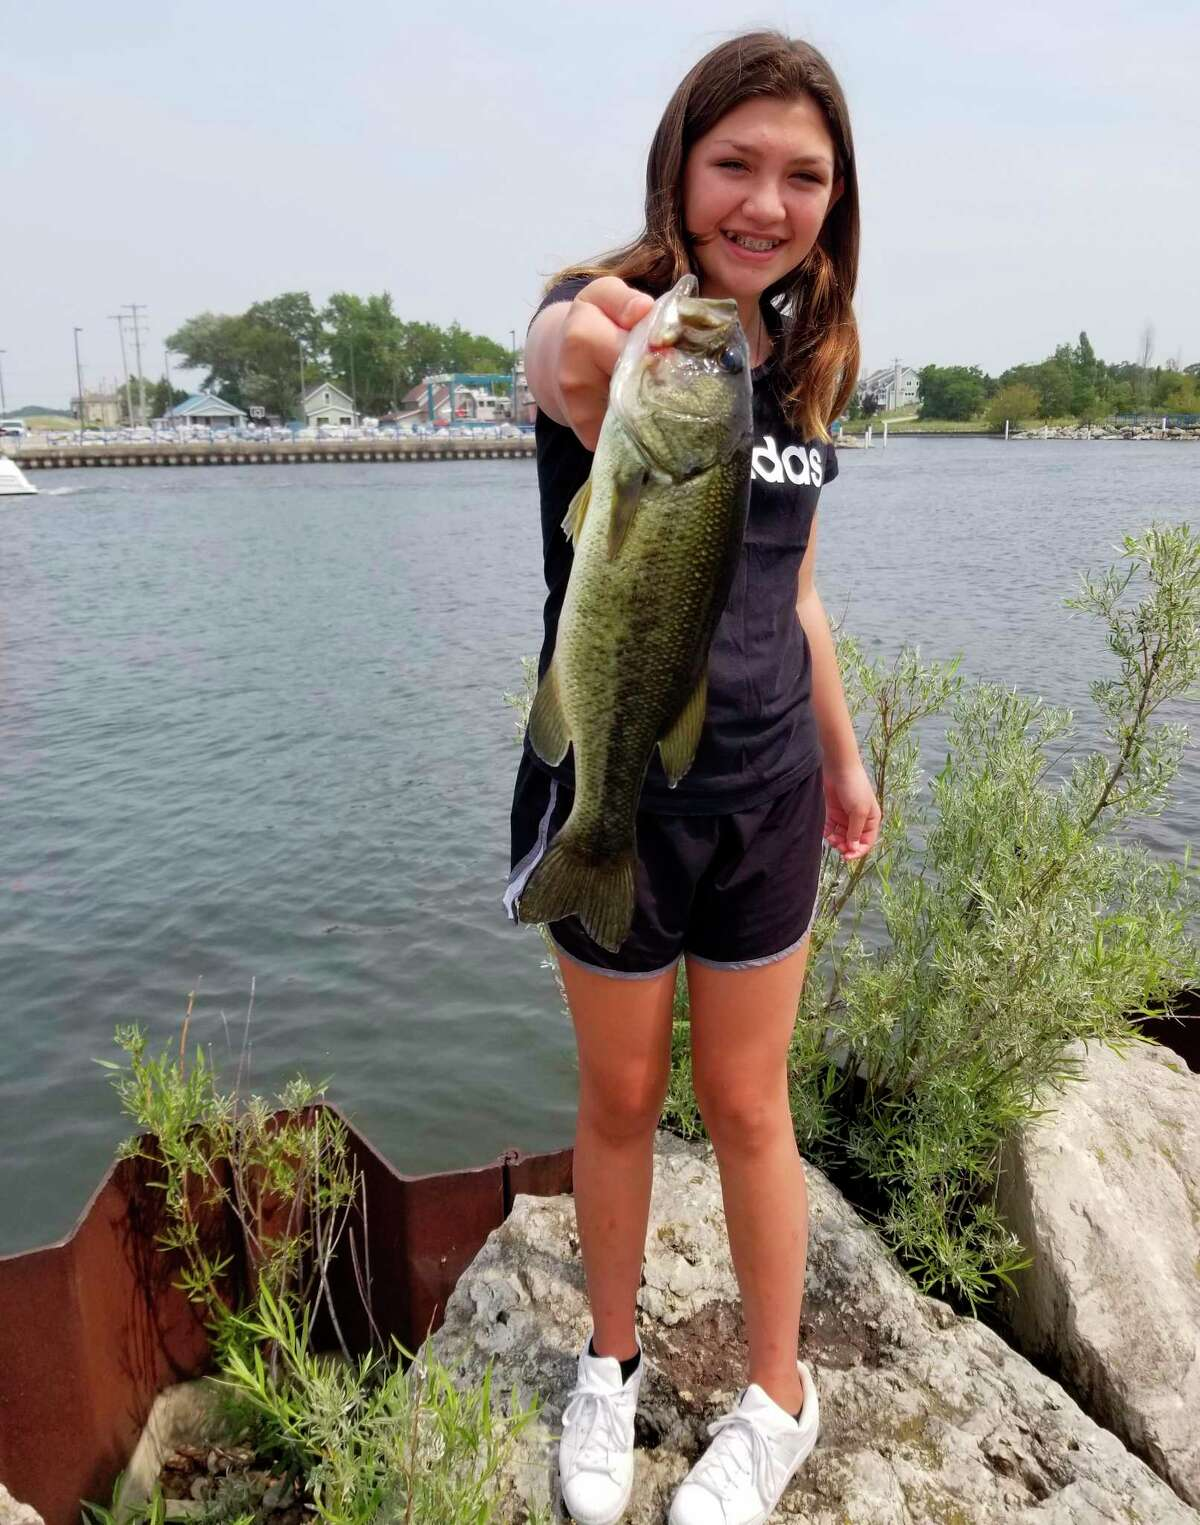 Madeline Dawson shows off the bass she caughtwhile participating in the Armory Youth Project's Fish On program. (Courtesy photo)